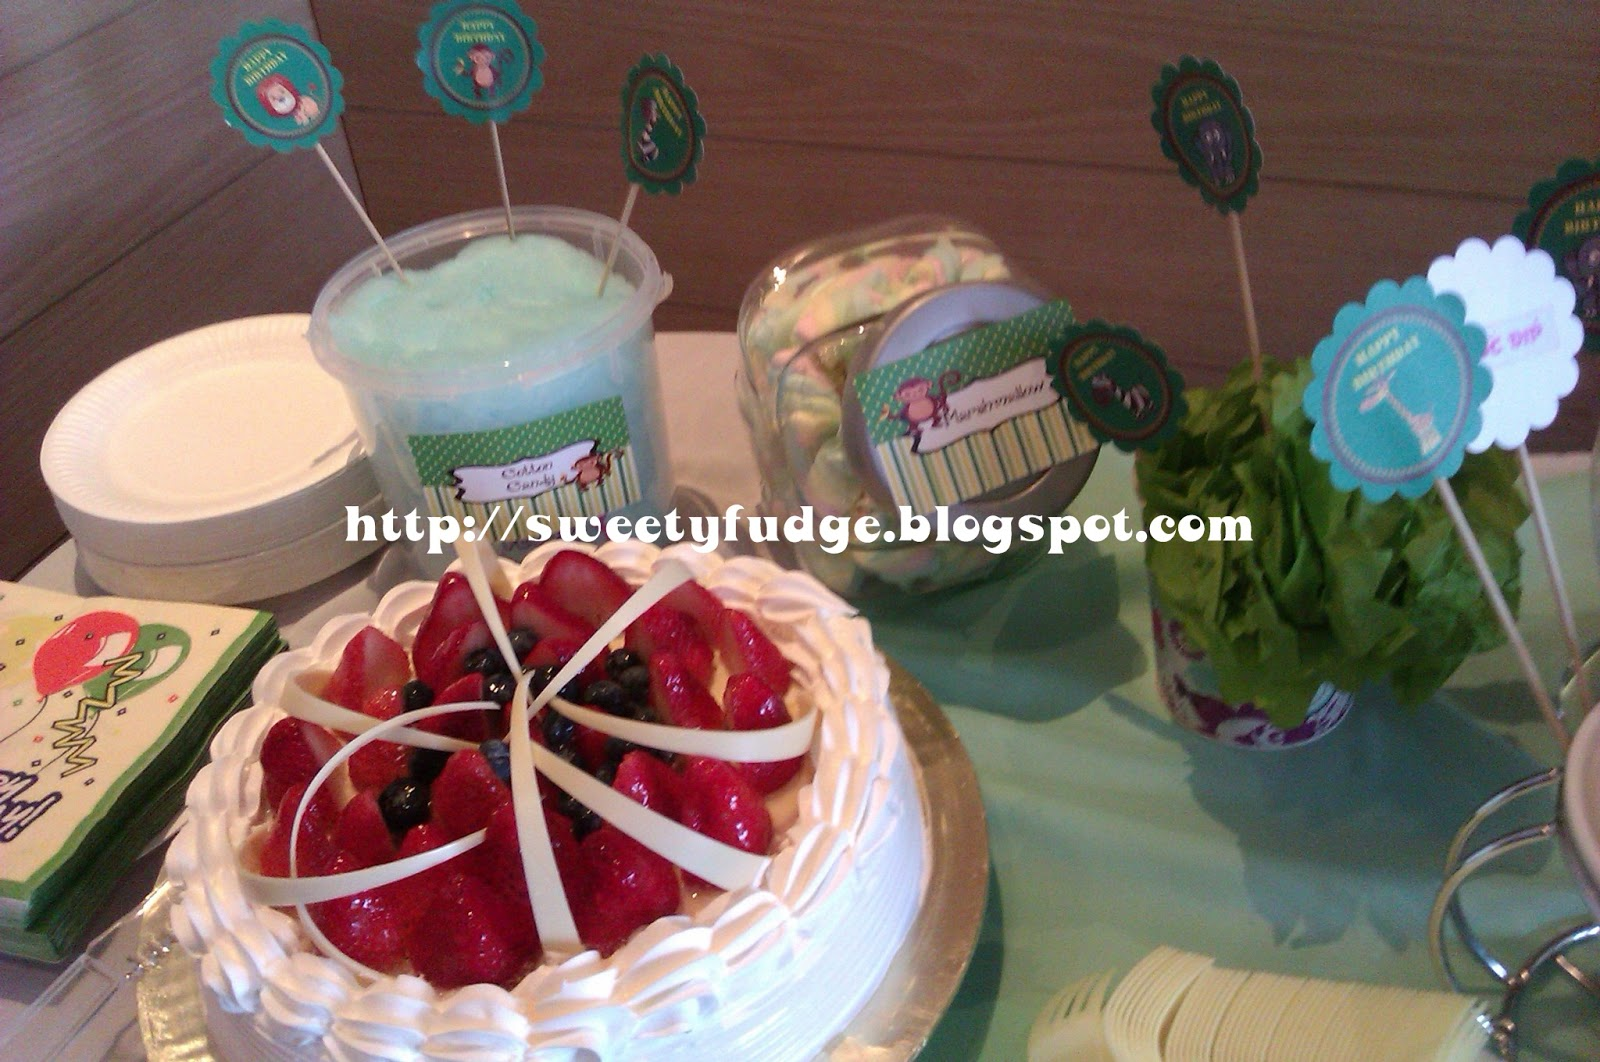 Sweetyfudge Bakery (001925672-X): New Product : Candy Buffet